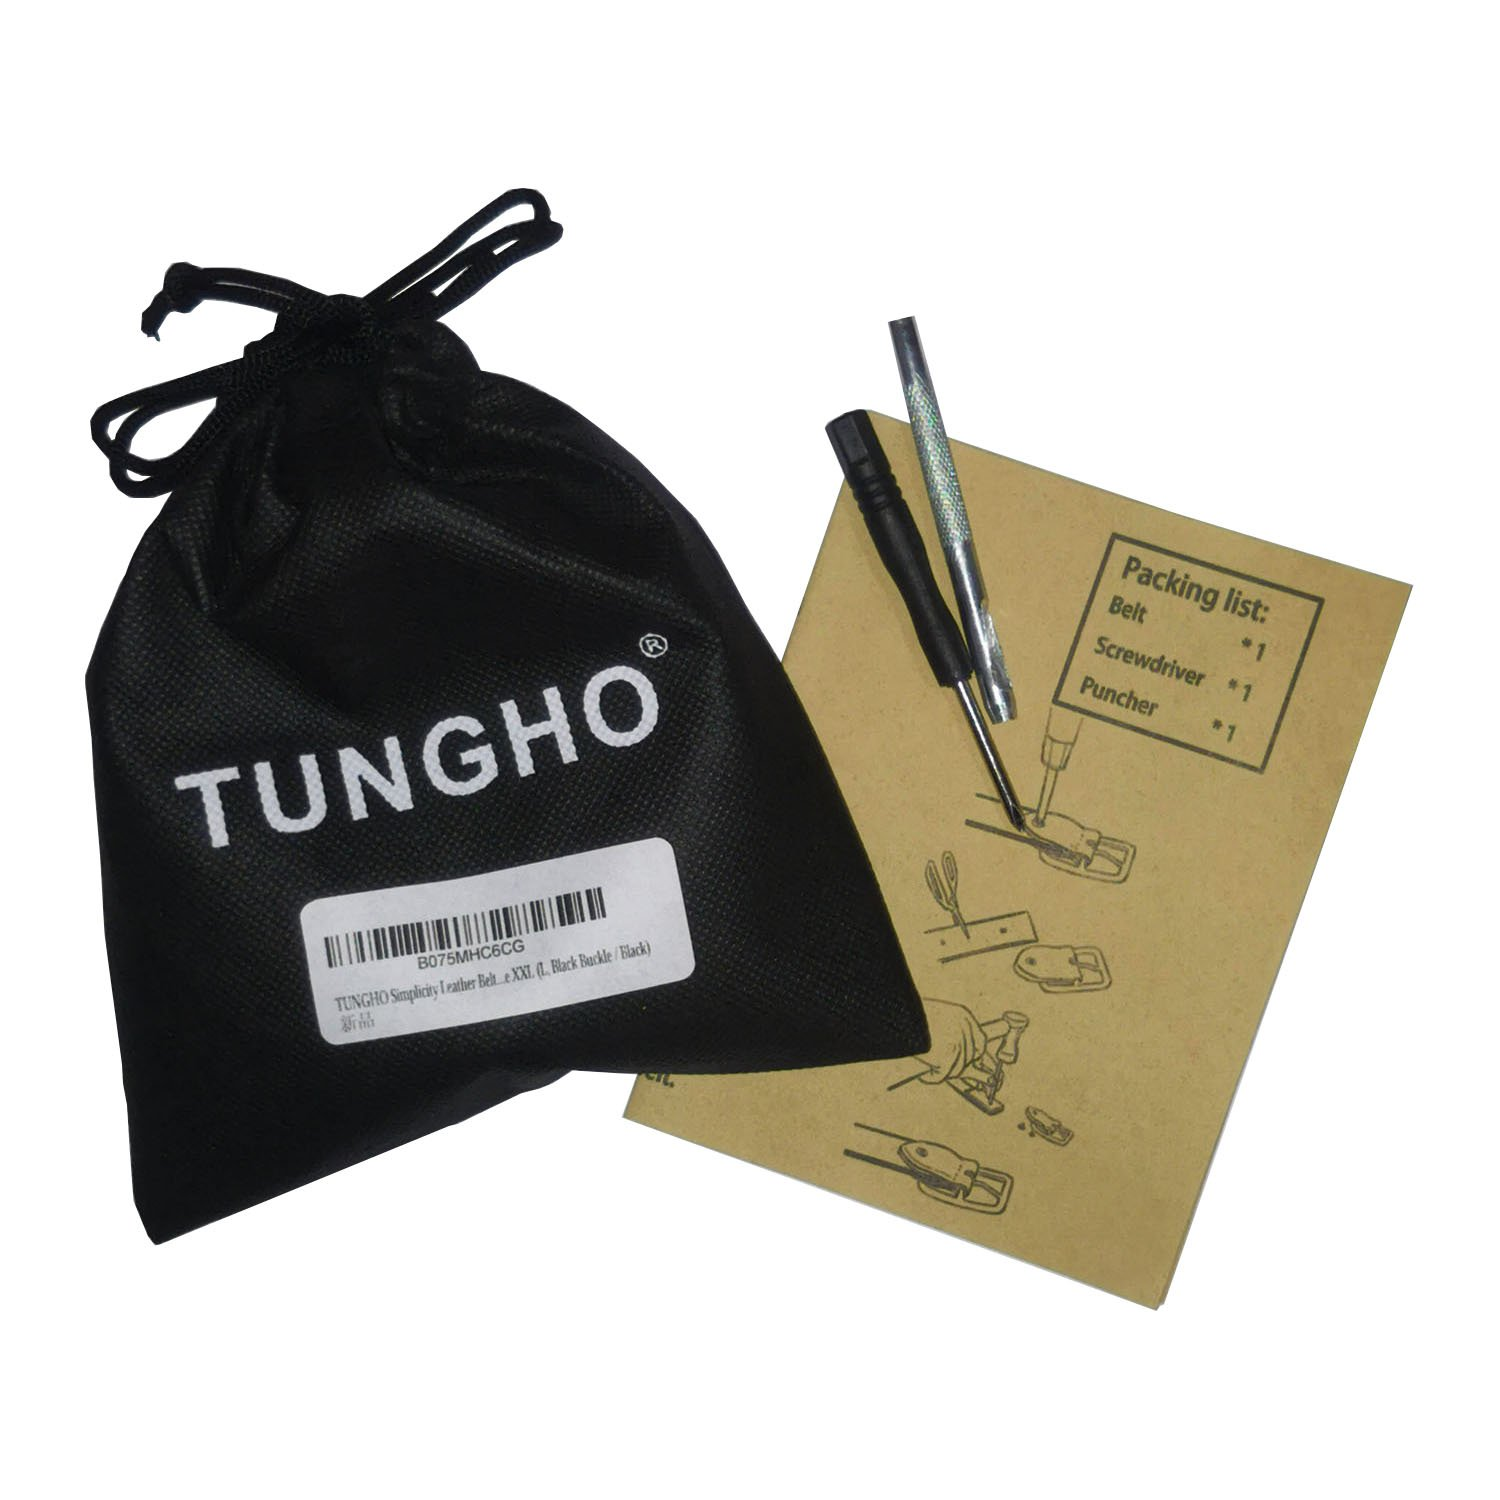 TUNGHO Simplicity Leather Belts For Women Polished Buckle Plus Size XXXL L, Max pants size 41, Black Buckle // Dark Brown